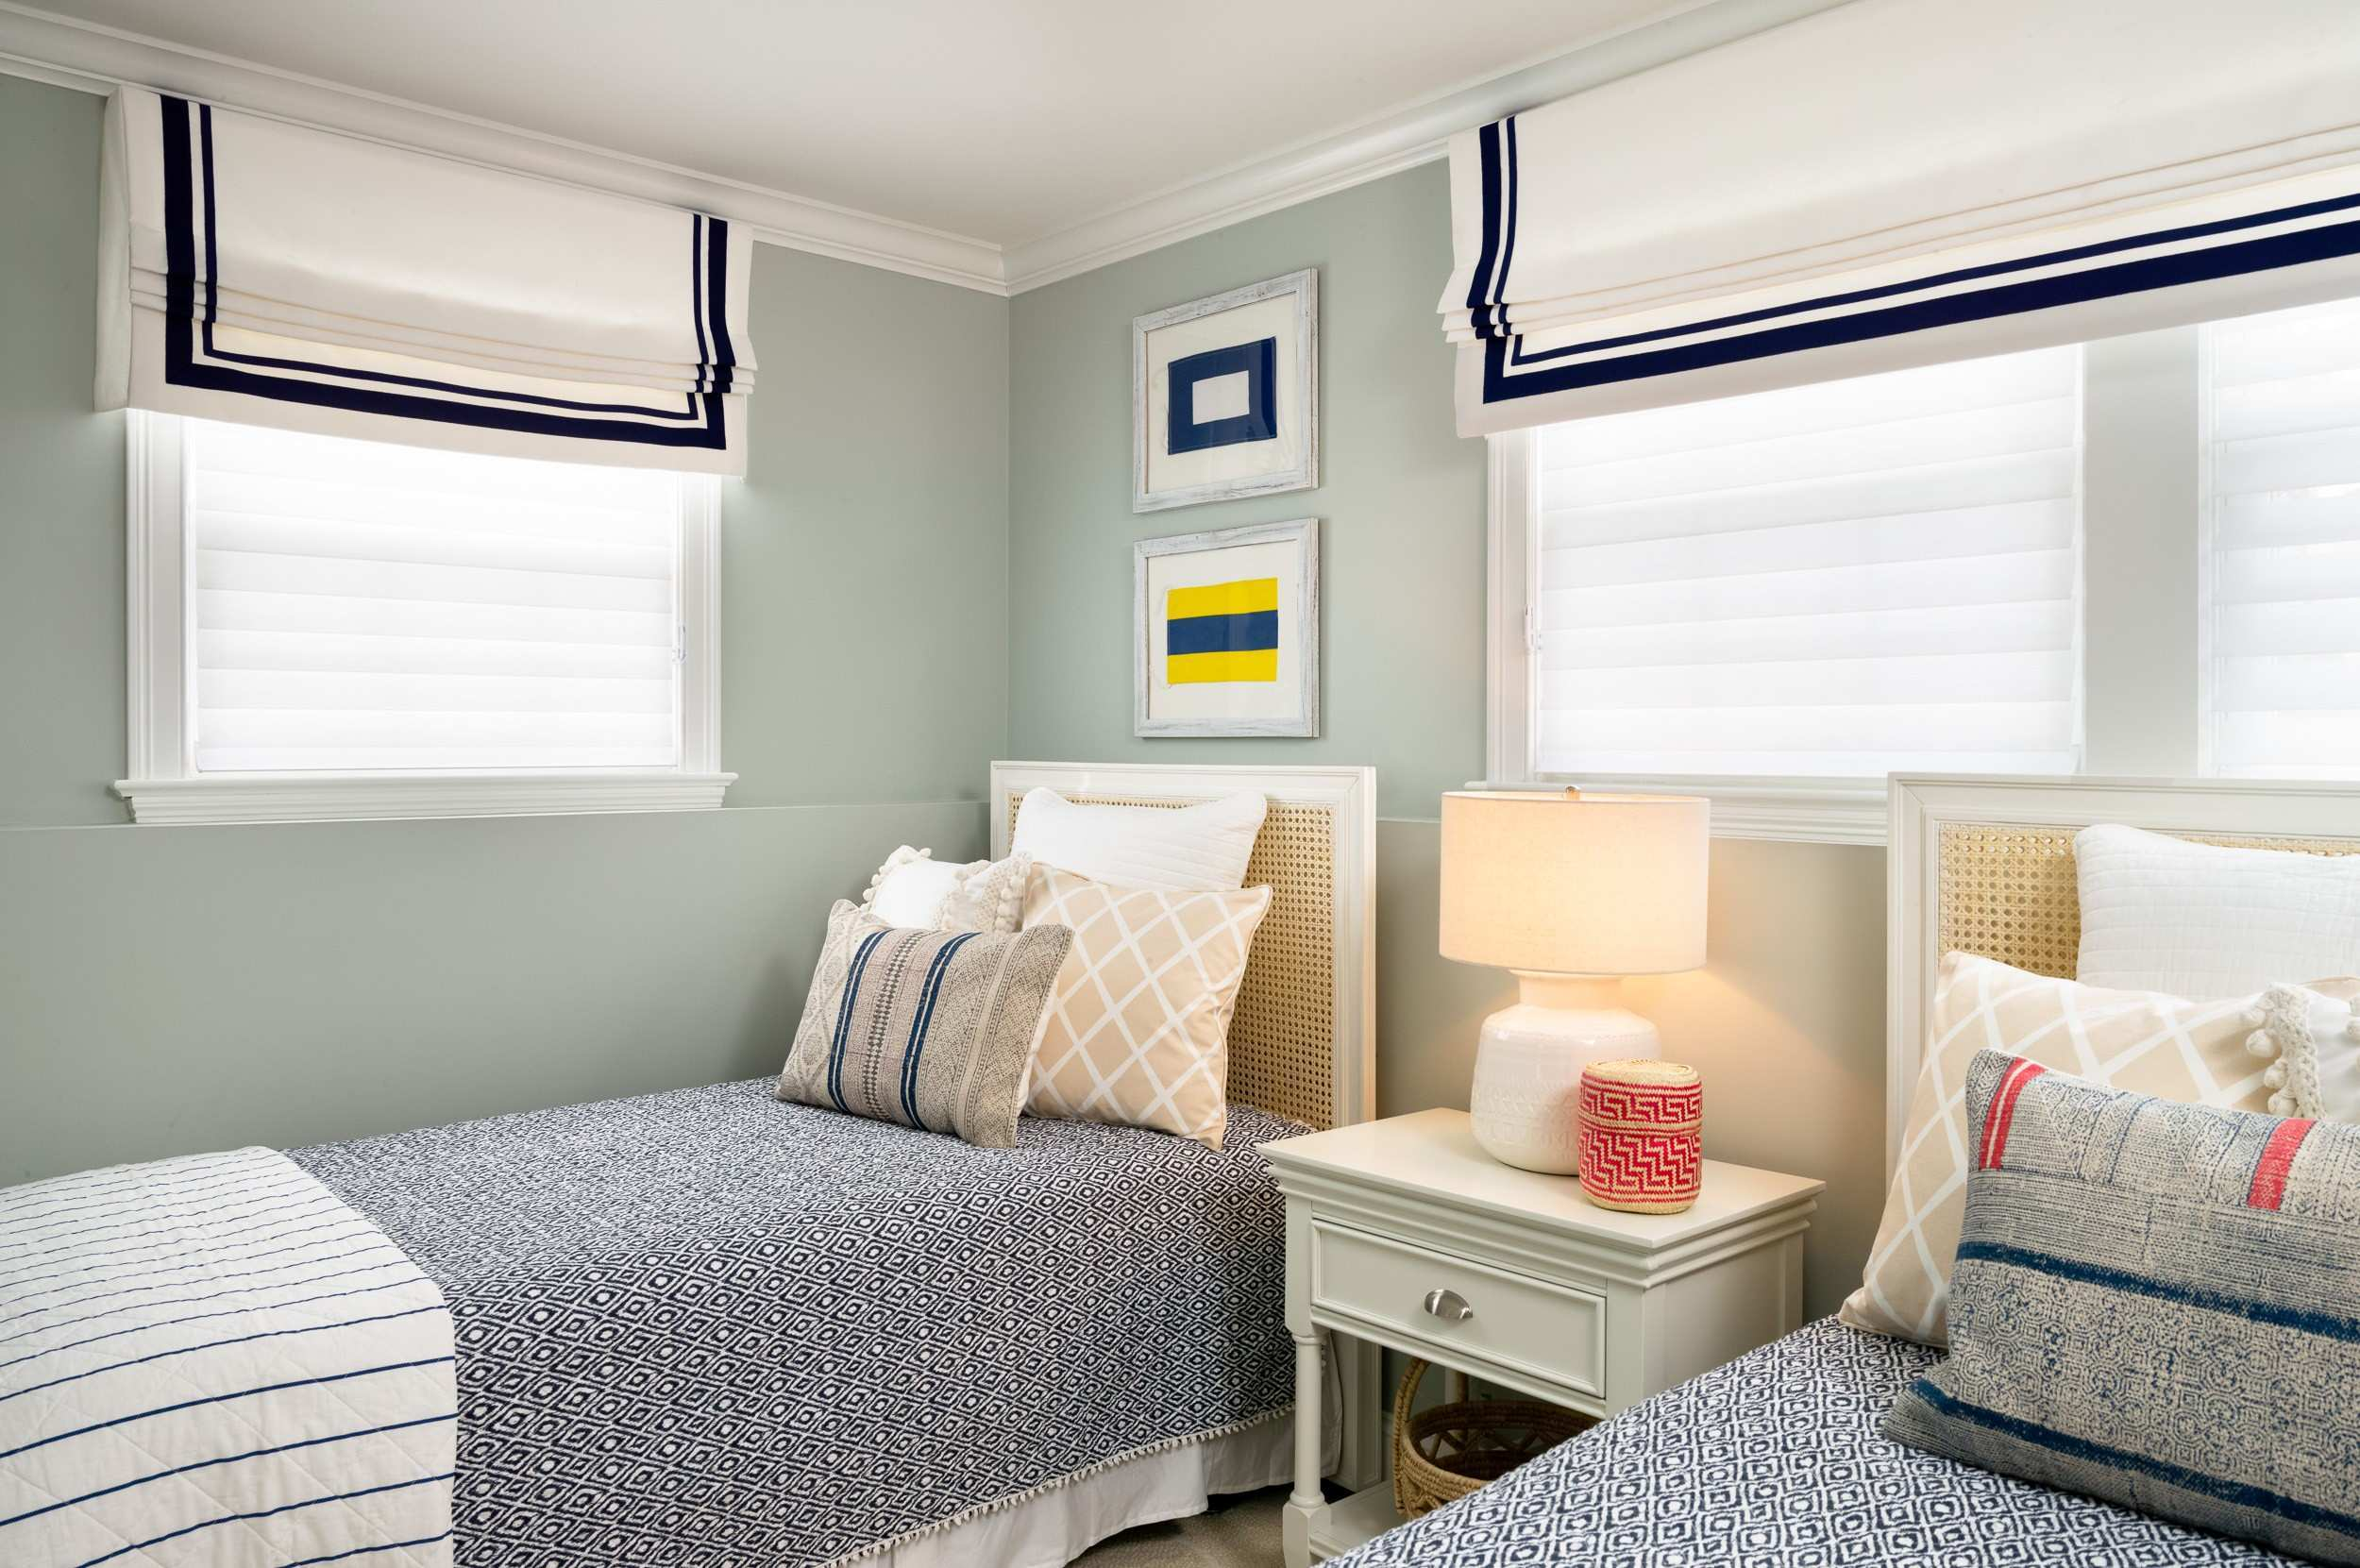 Boy Room Ideas Small Spaces d Bedroom For Brother And Sister